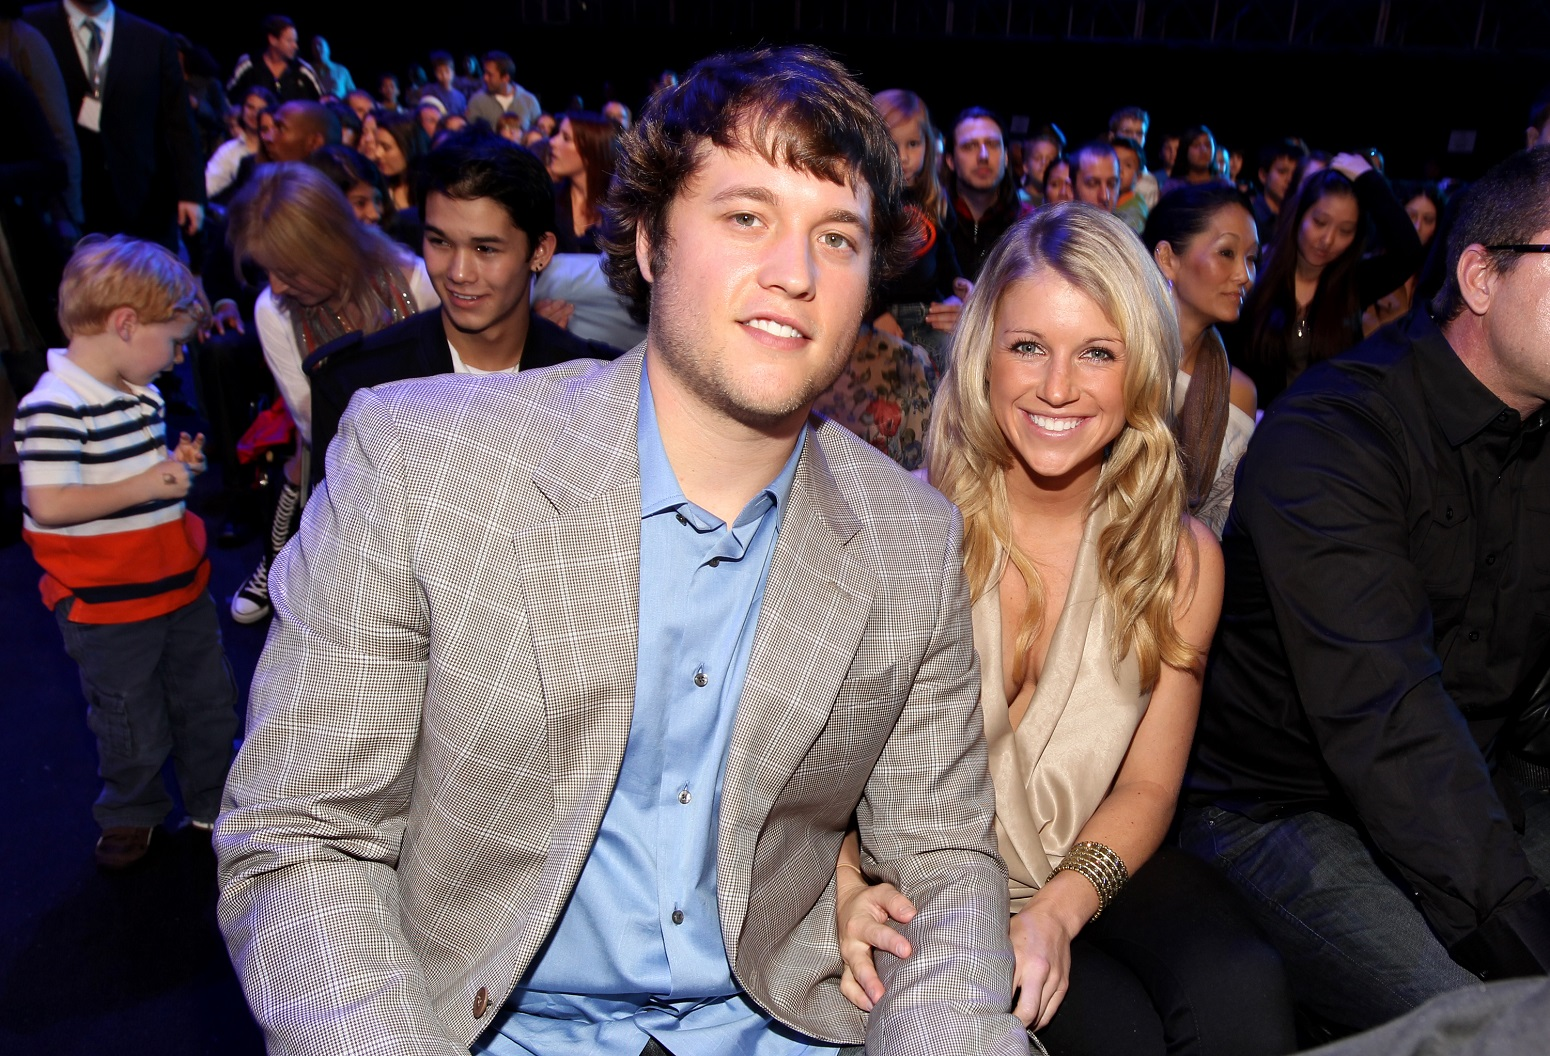 Matthew Stafford's wife controversial statement COVID-19